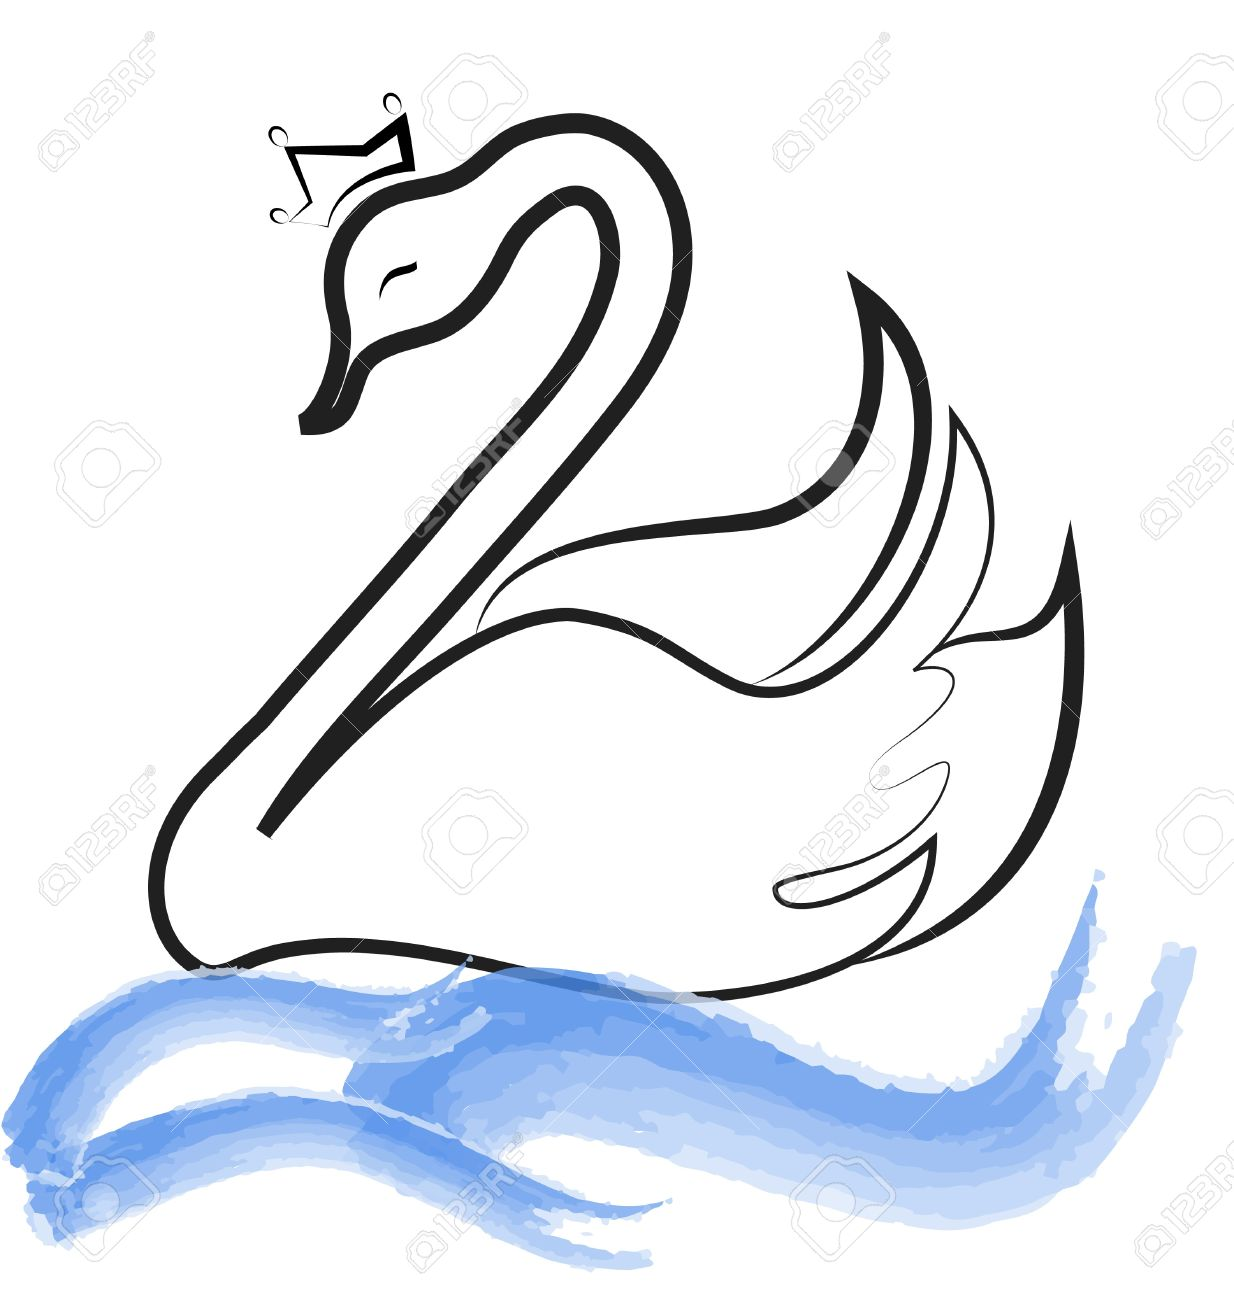 Swan lake black and white free clipart png freeuse stock Swan Clipart Black And White | Free download best Swan ... png freeuse stock